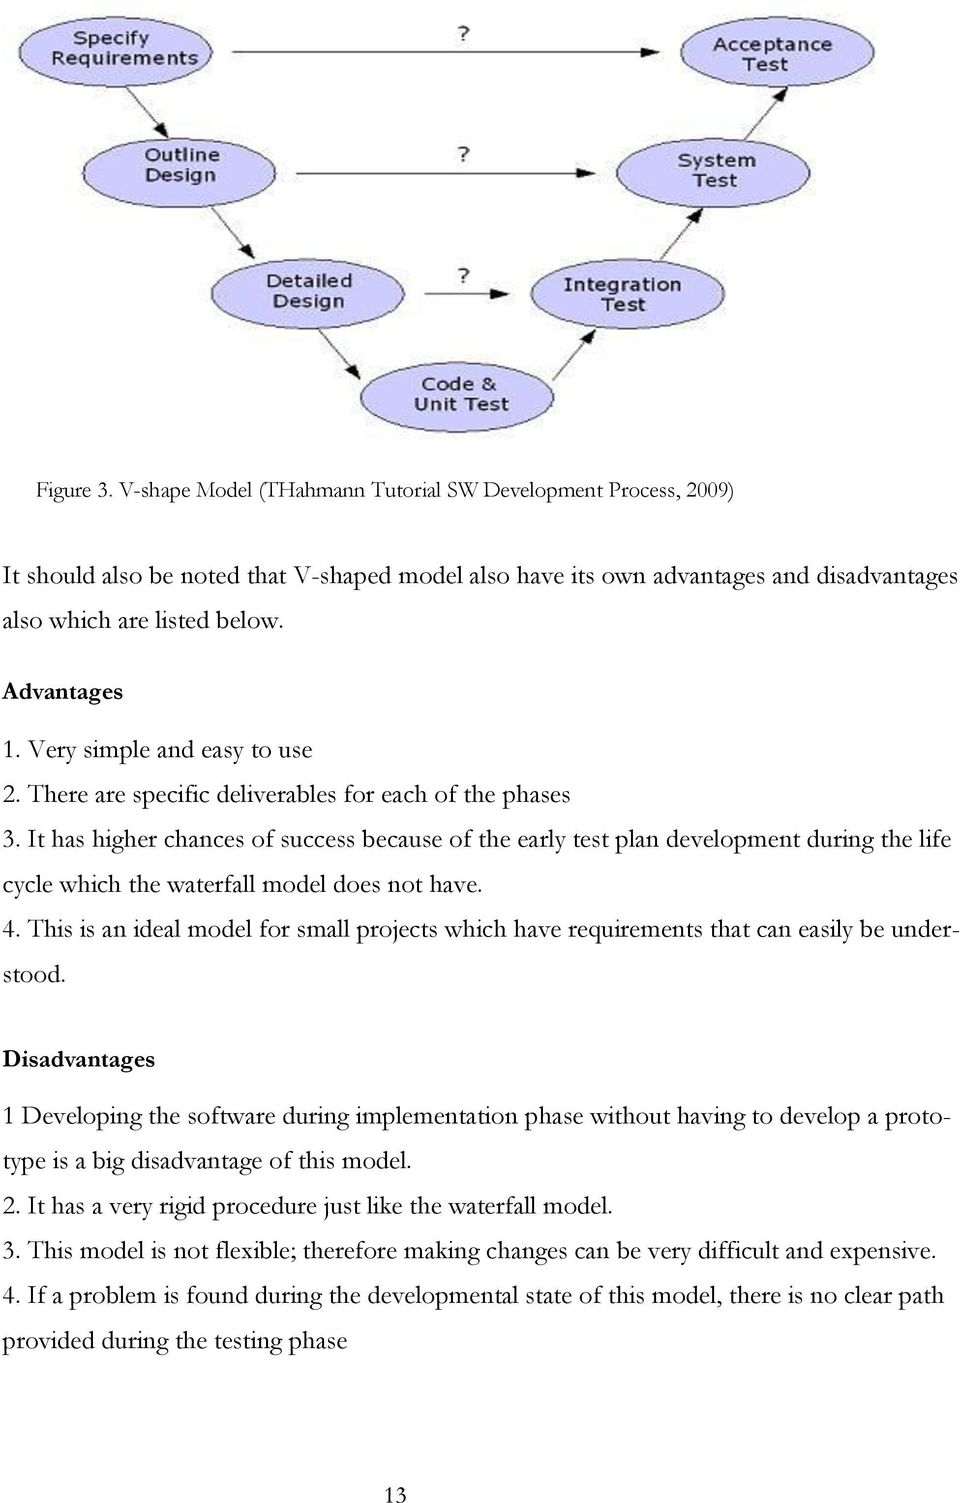 Systems Development Life Cycle Essay